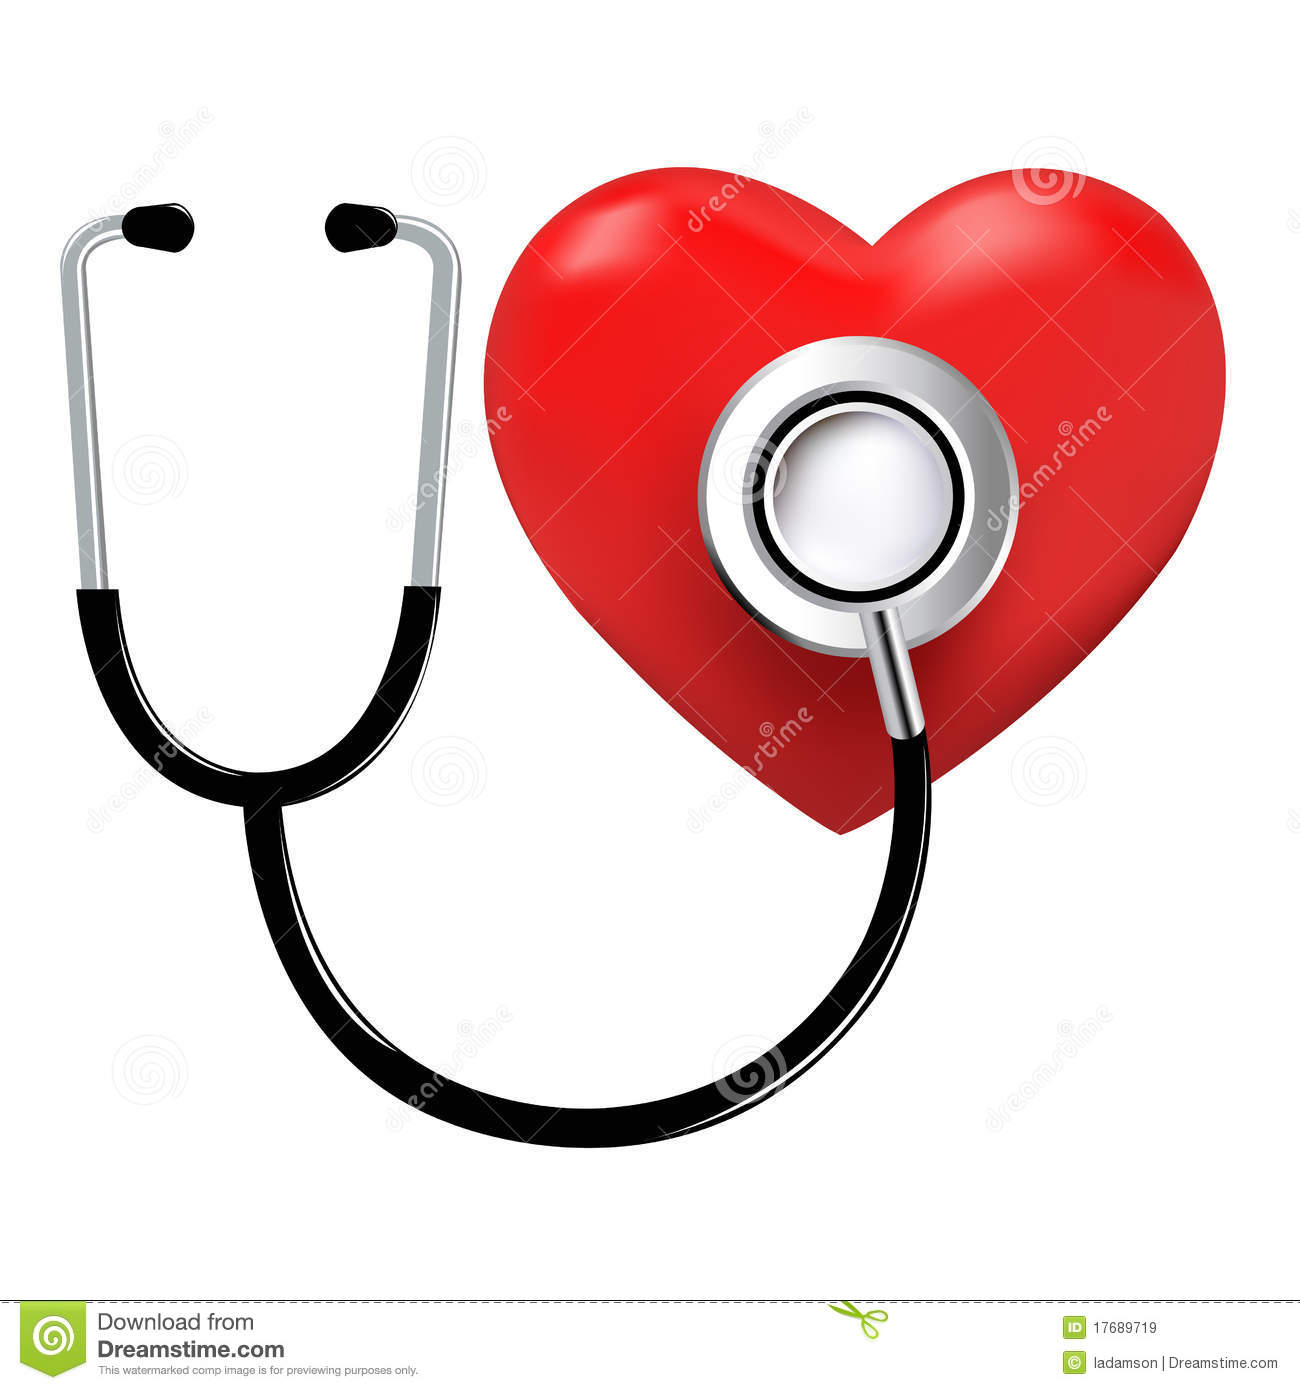 medical doctor heart listening device stethoscope stock rh dreamstime com Woman Doctor Clip Art heart doctor clip art